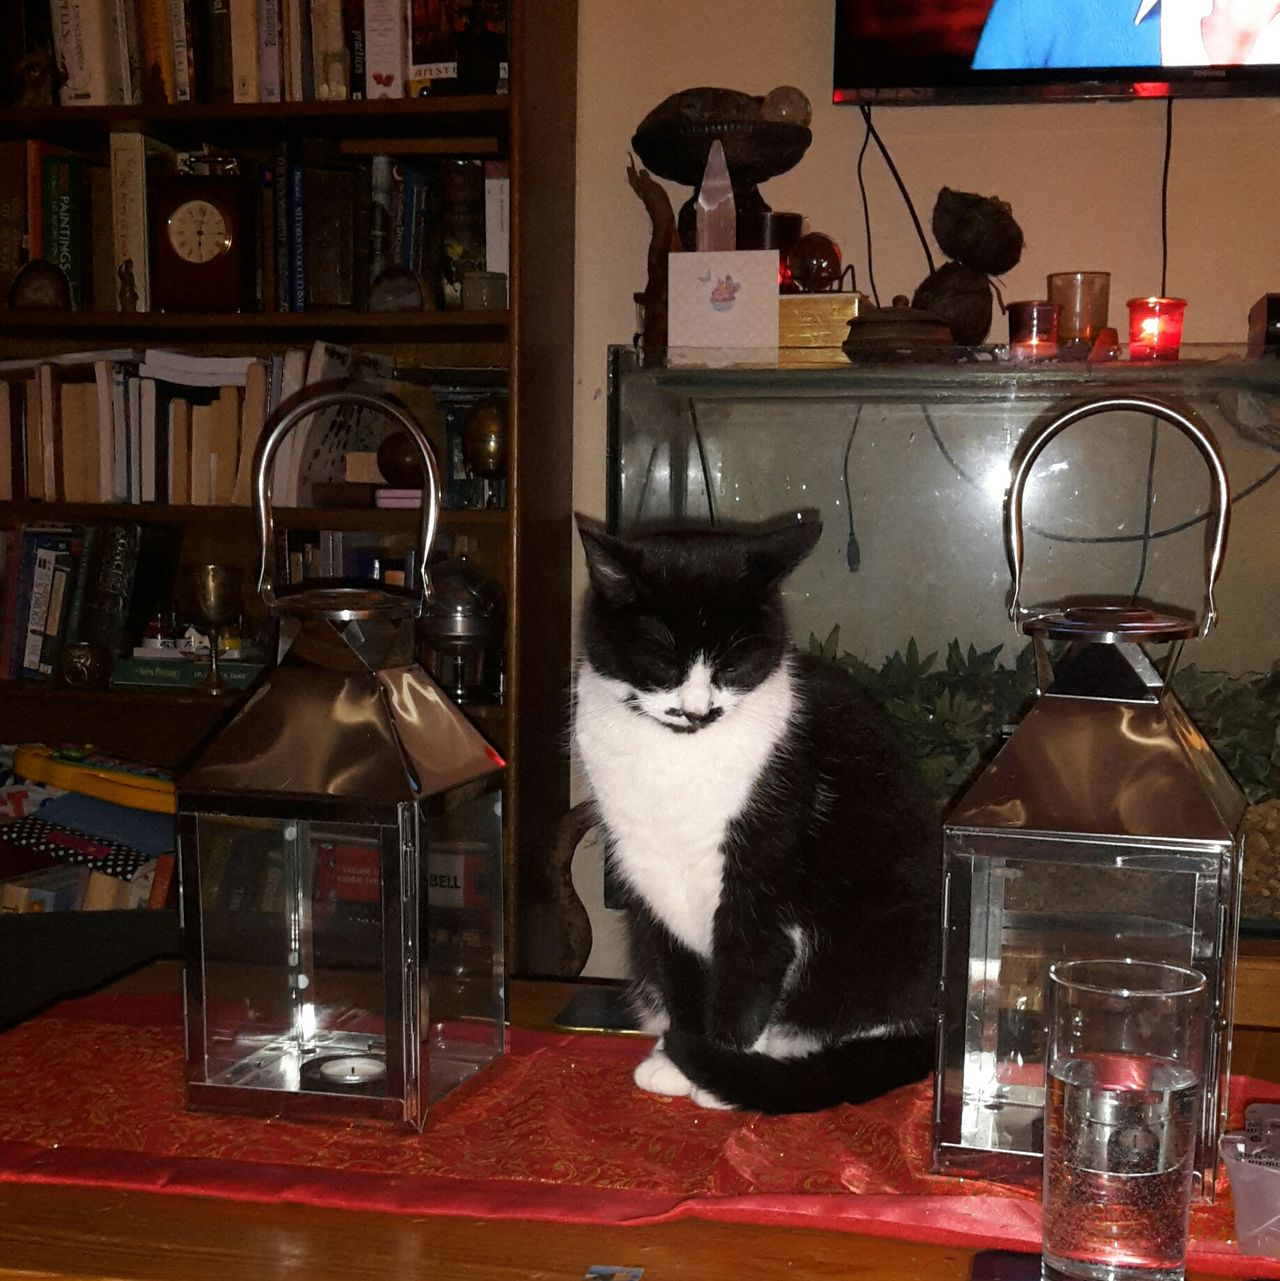 Cat Lanterns Table Pose Sleeping Cat Sitting Cat Indoors